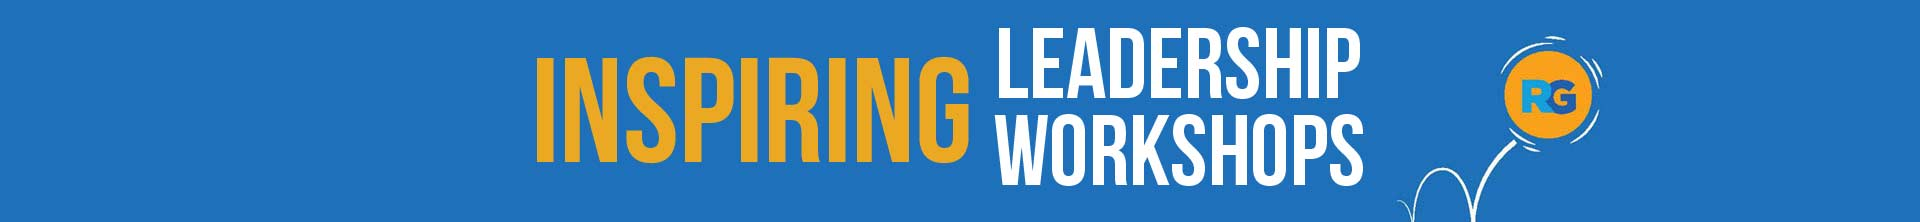 inspiring leadership workshops